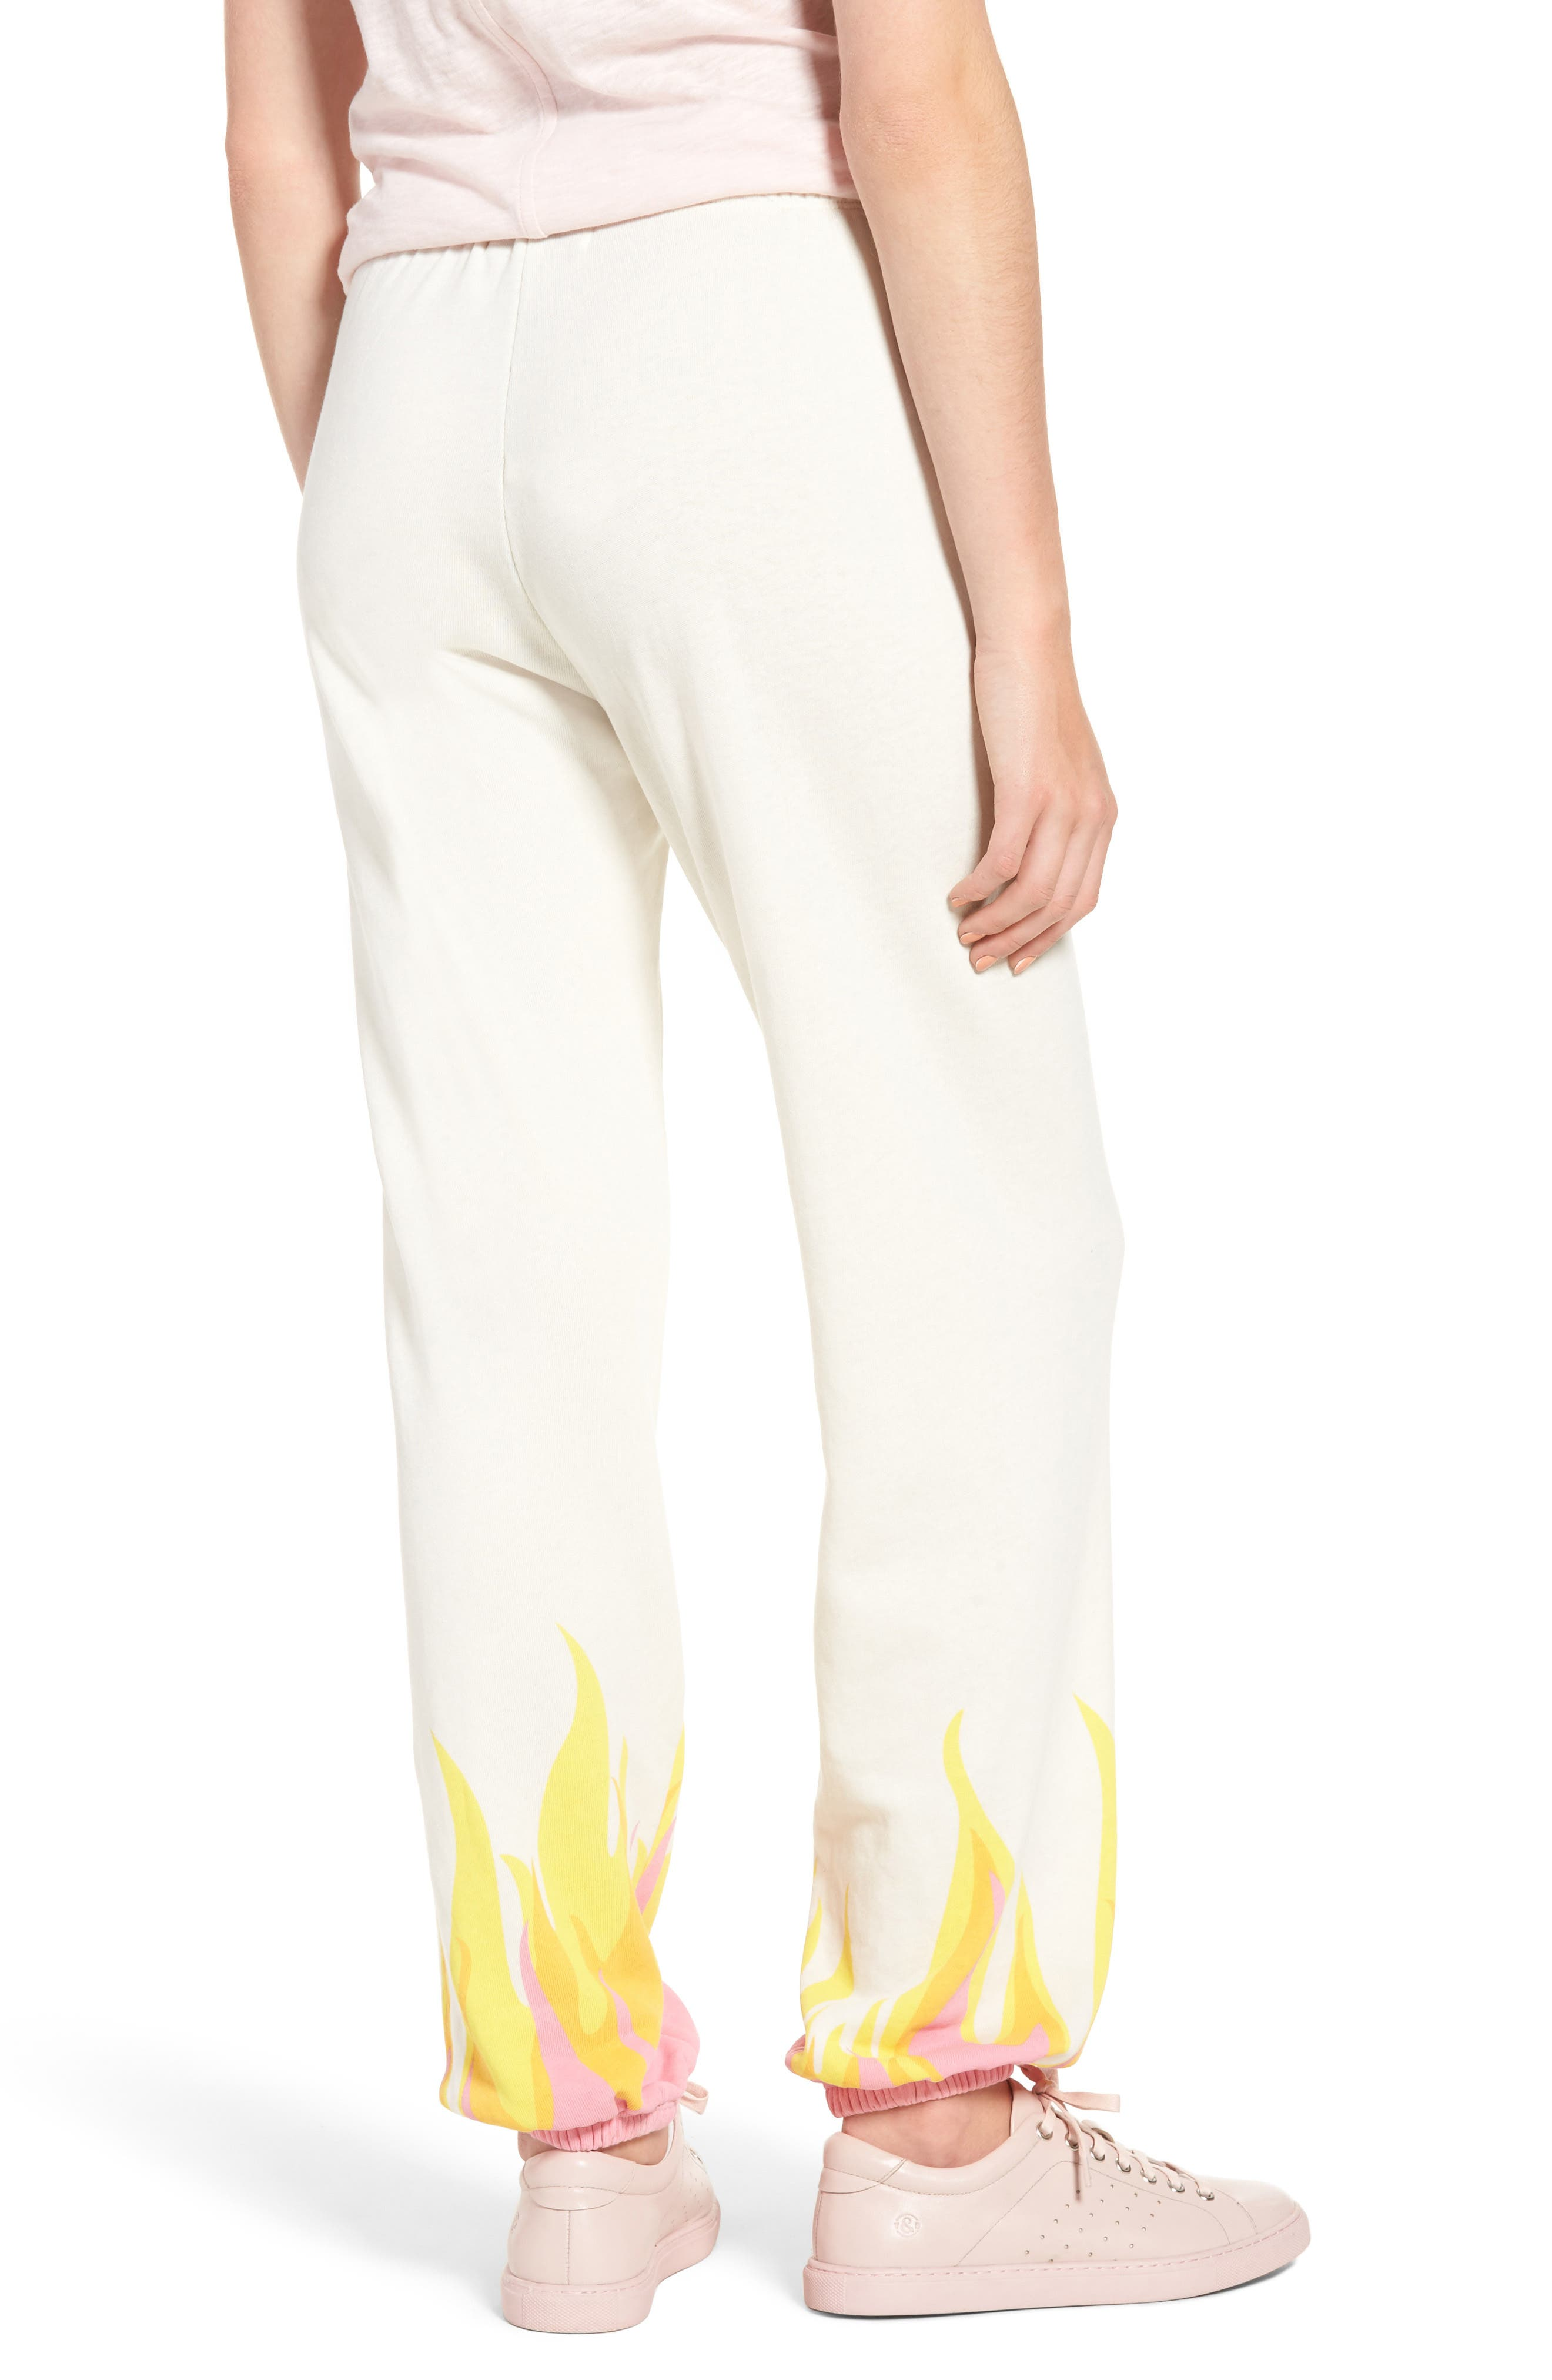 Wildfire Easy Sweatpants,                             Alternate thumbnail 2, color,                             901